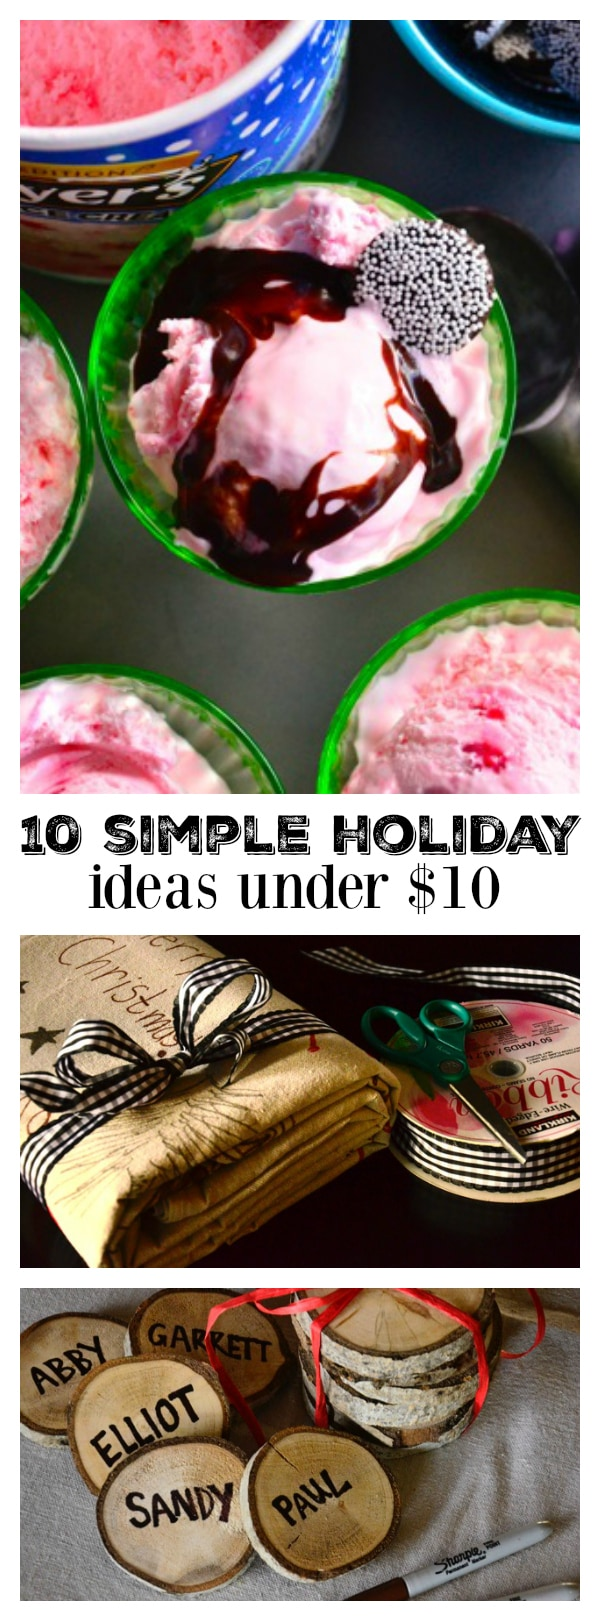 Today I'm sharing 10 Simple Ideas under $10 that will hopefully give you some fresh ideas and a sense of freedom in this last week before Christmas.